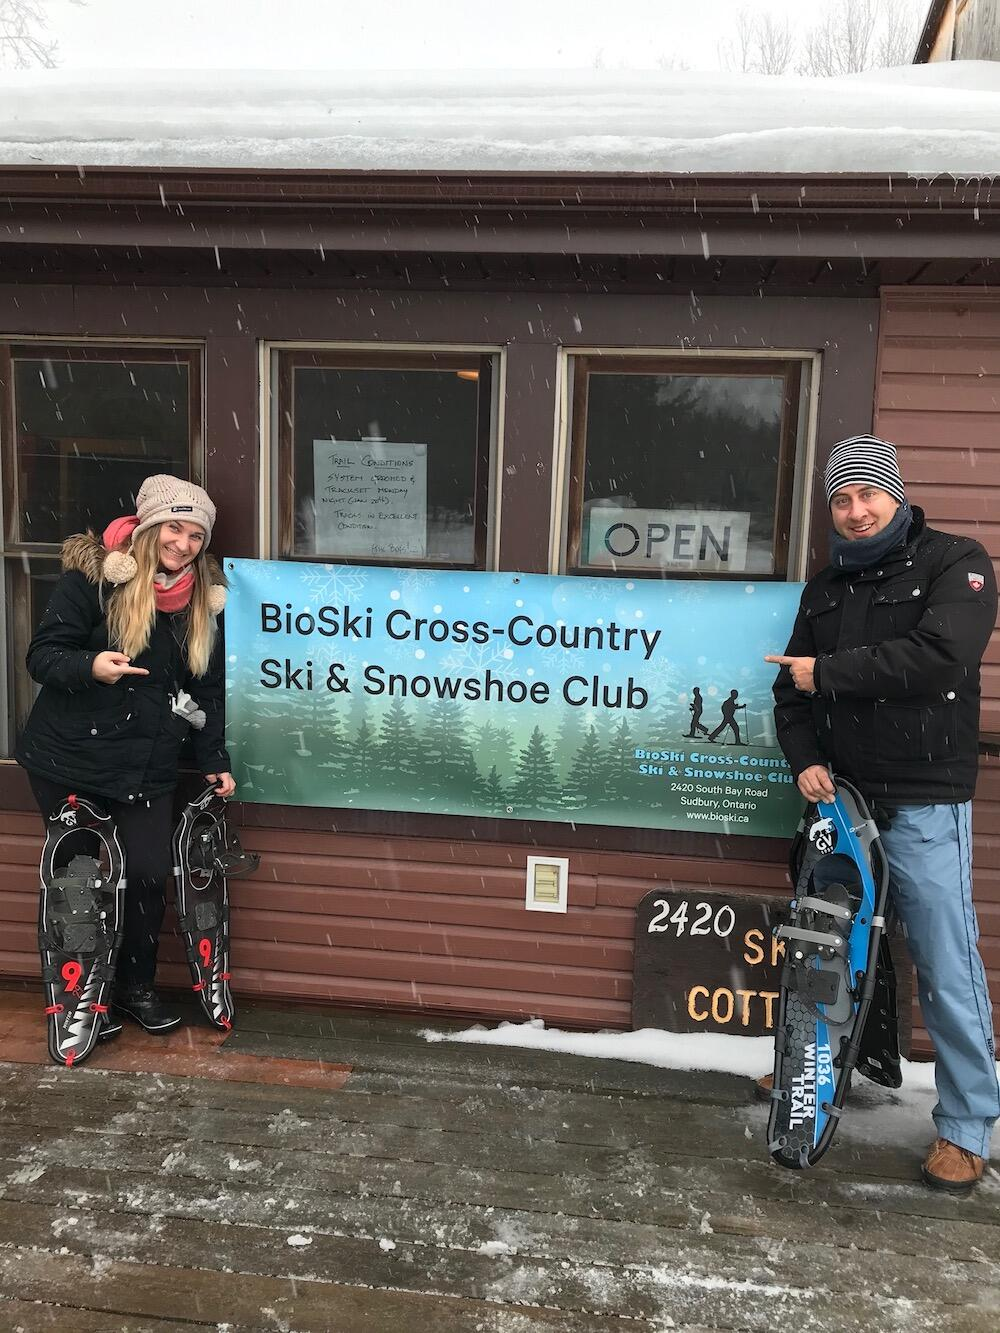 Man and woman standing with snowshoes on either side of BioSki sign